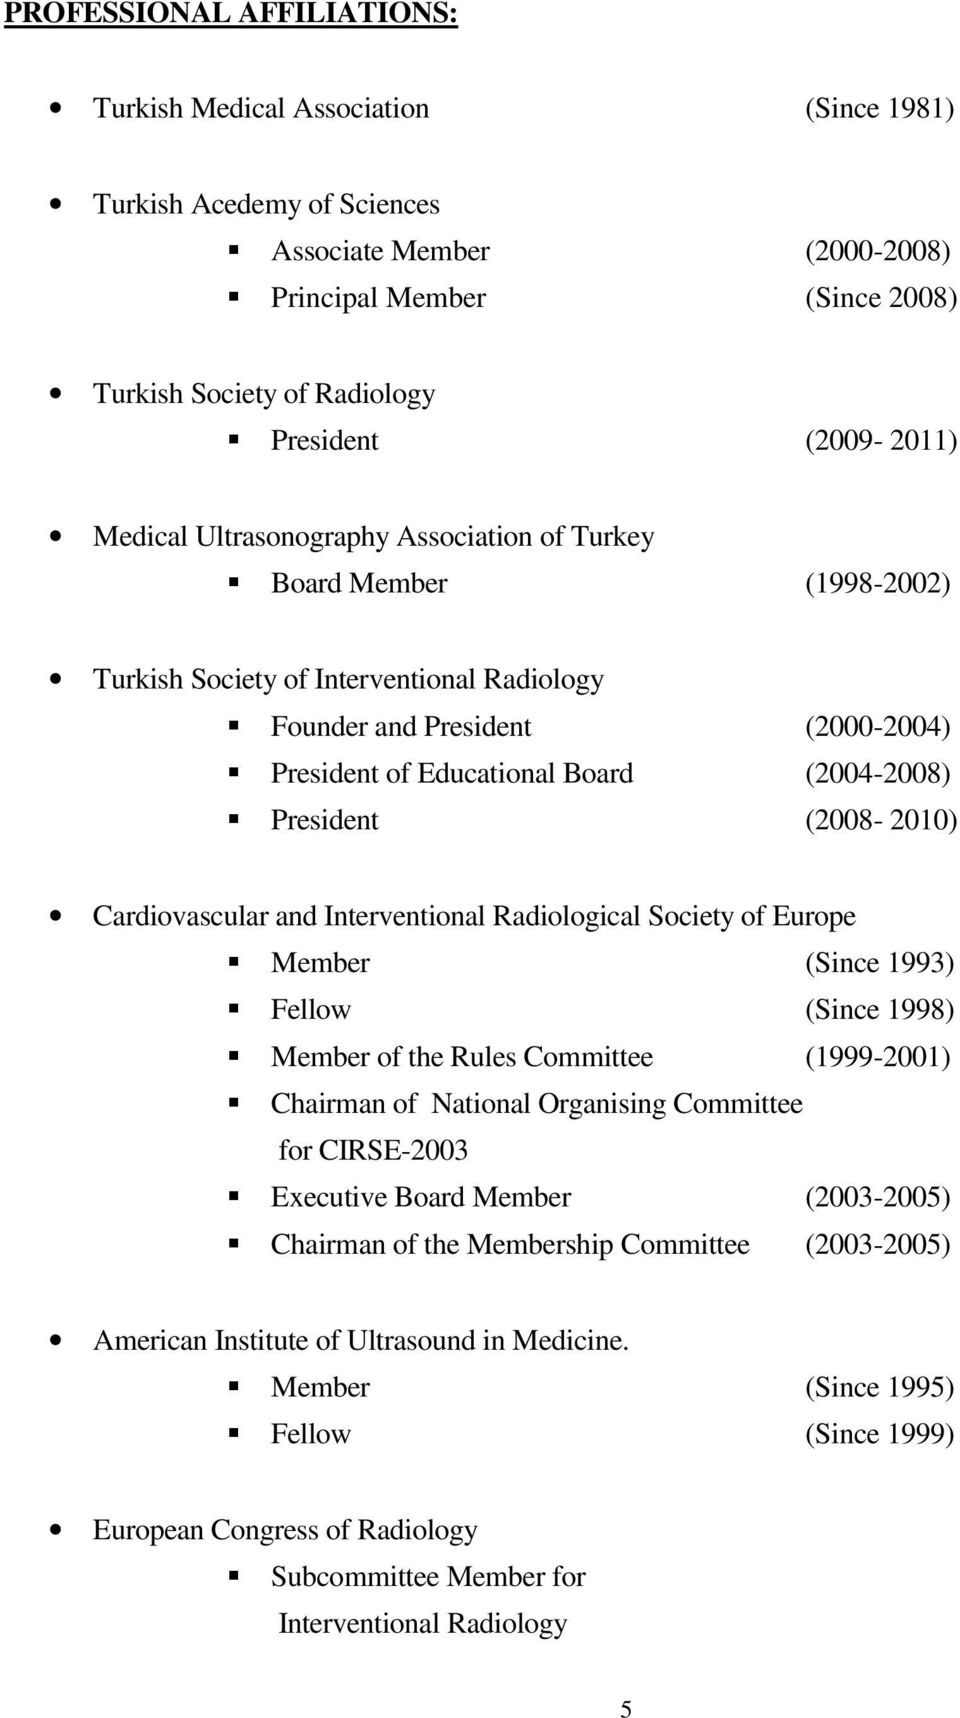 (2004-2008) President (2008-2010) Cardiovascular and Interventional Radiological Society of Europe Member (Since 1993) Fellow (Since 1998) Member of the Rules Committee (1999-2001) Chairman of